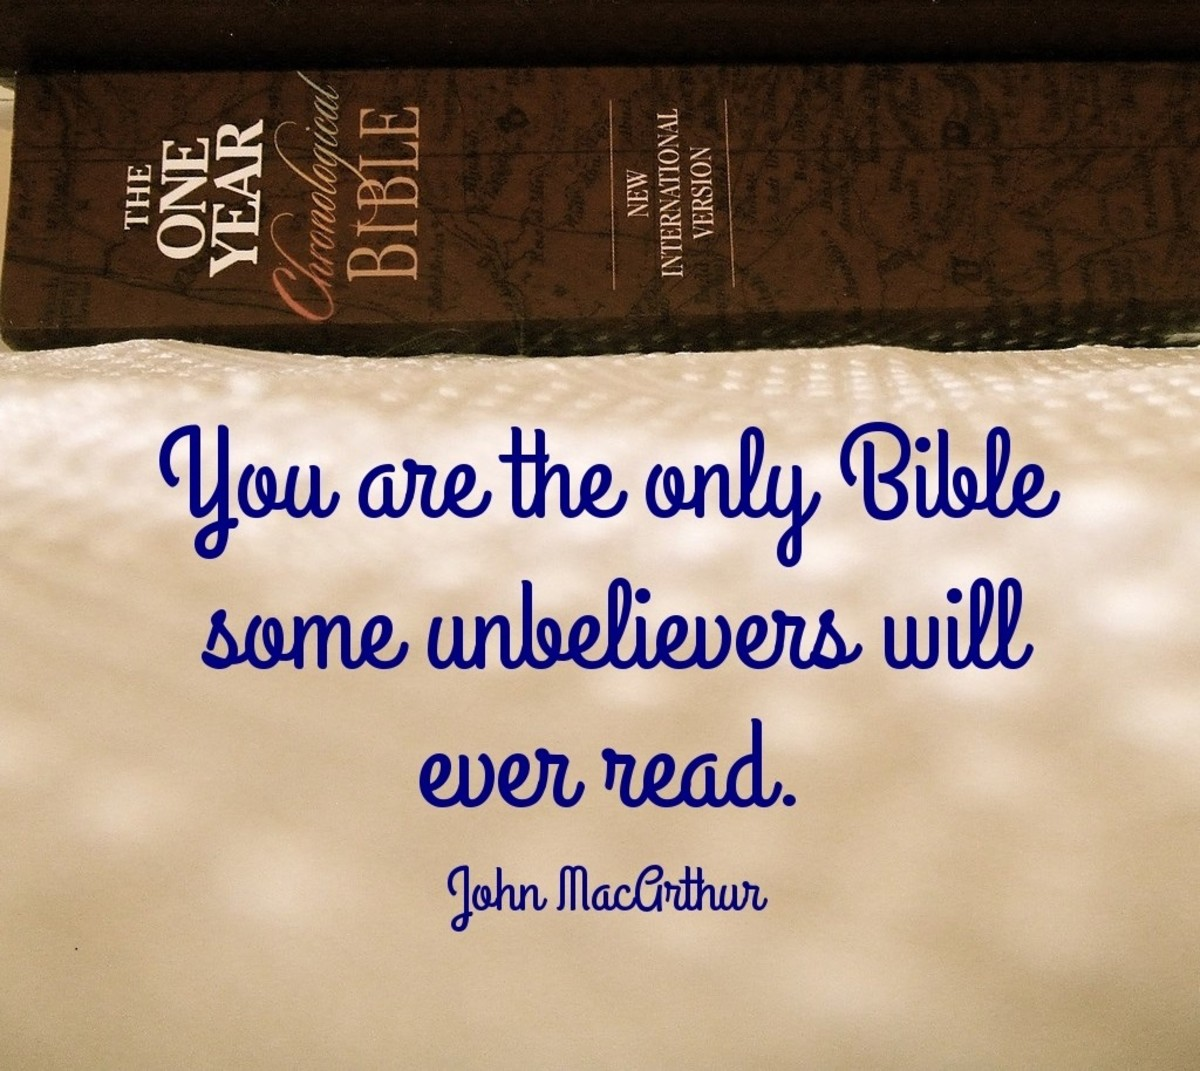 You are the only Bible some unbelievers will read.